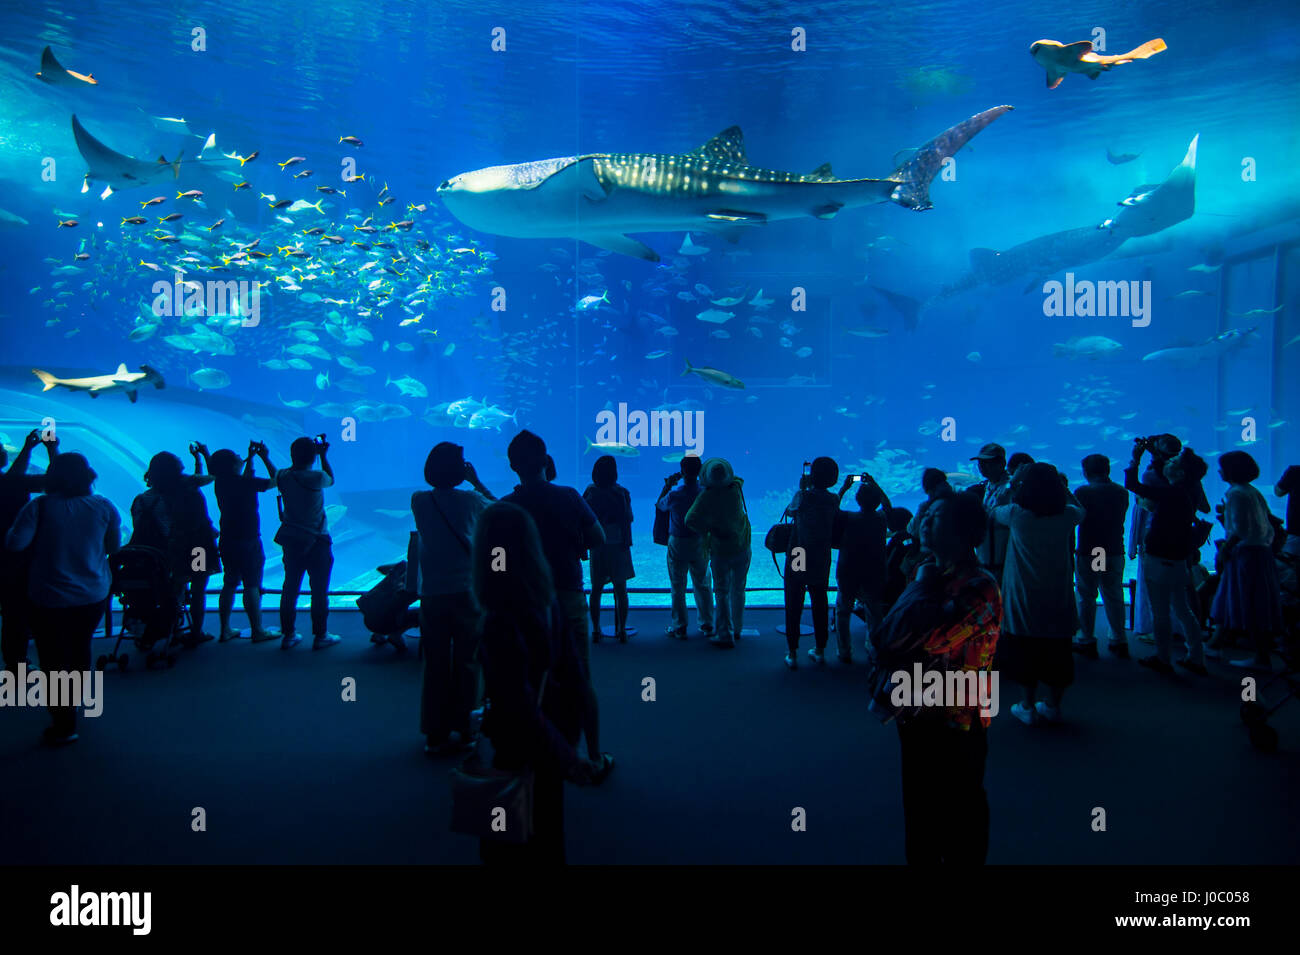 Whaleshark in the Churaumi Aquarium, Ocean Expo Park, Okinawa, Japan, Asia - Stock Image